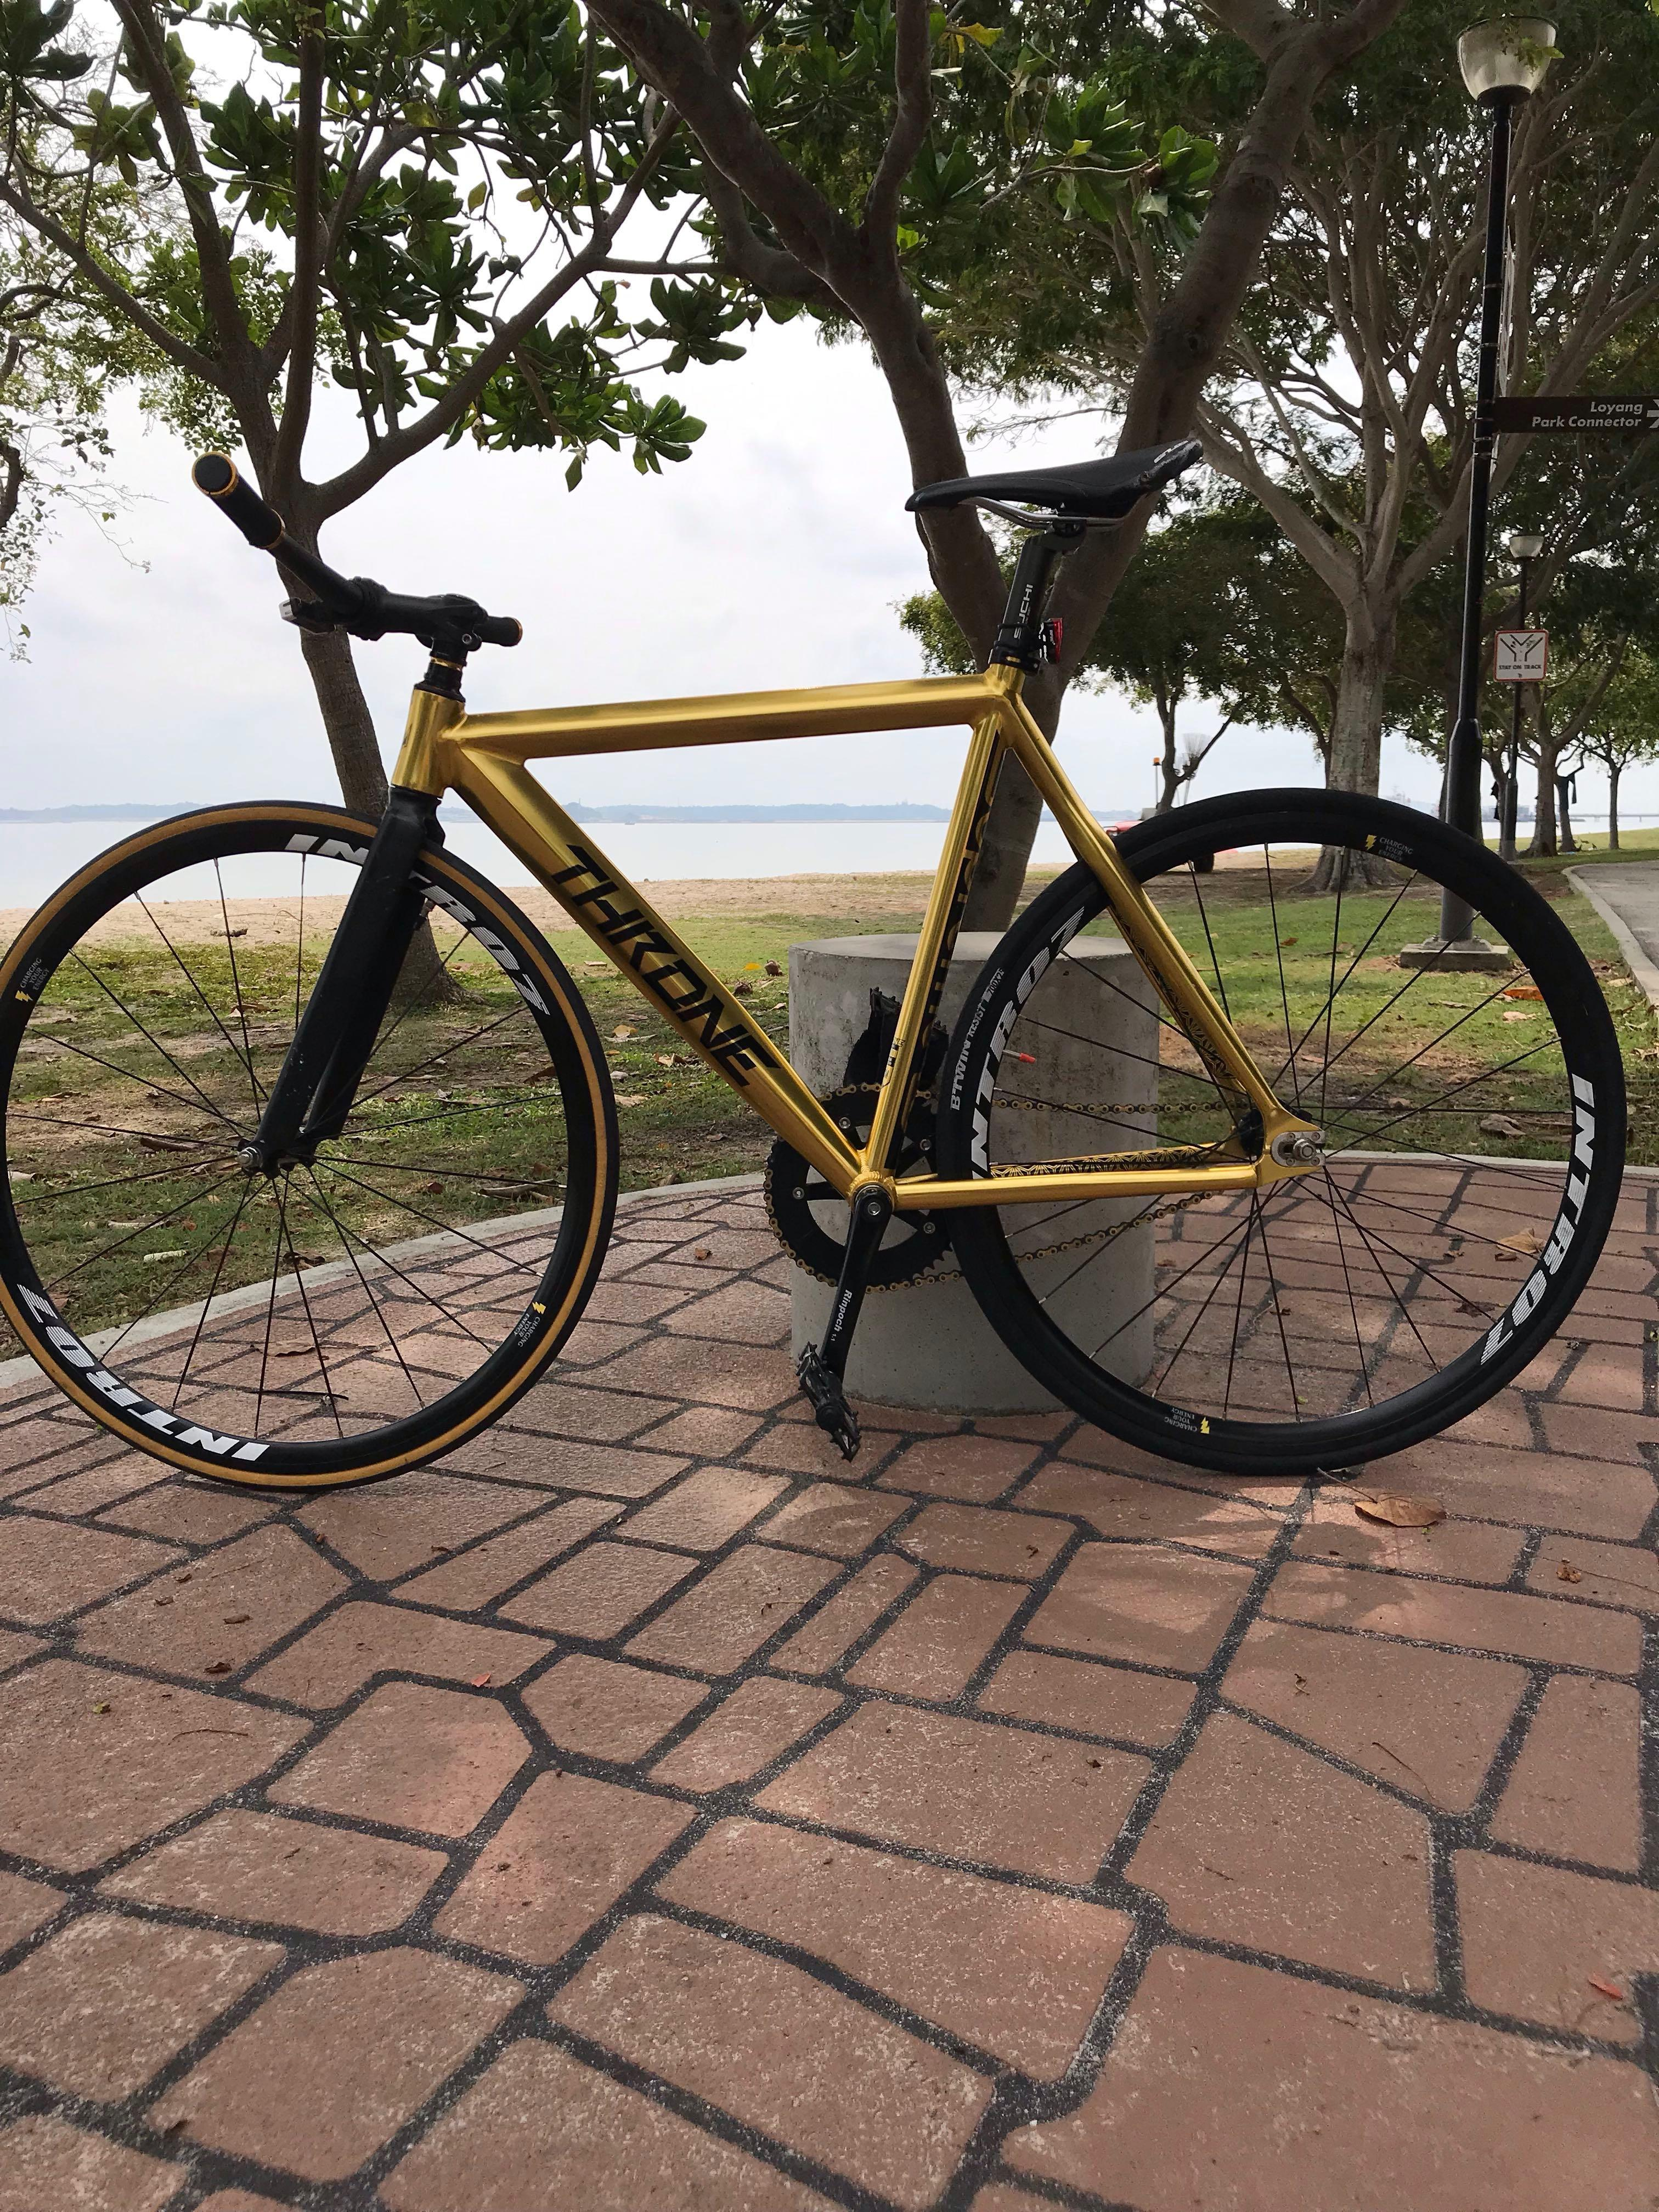 Throne Supreme Lo, Bicycles & PMDs, Bicycles, Fixies On Carousell